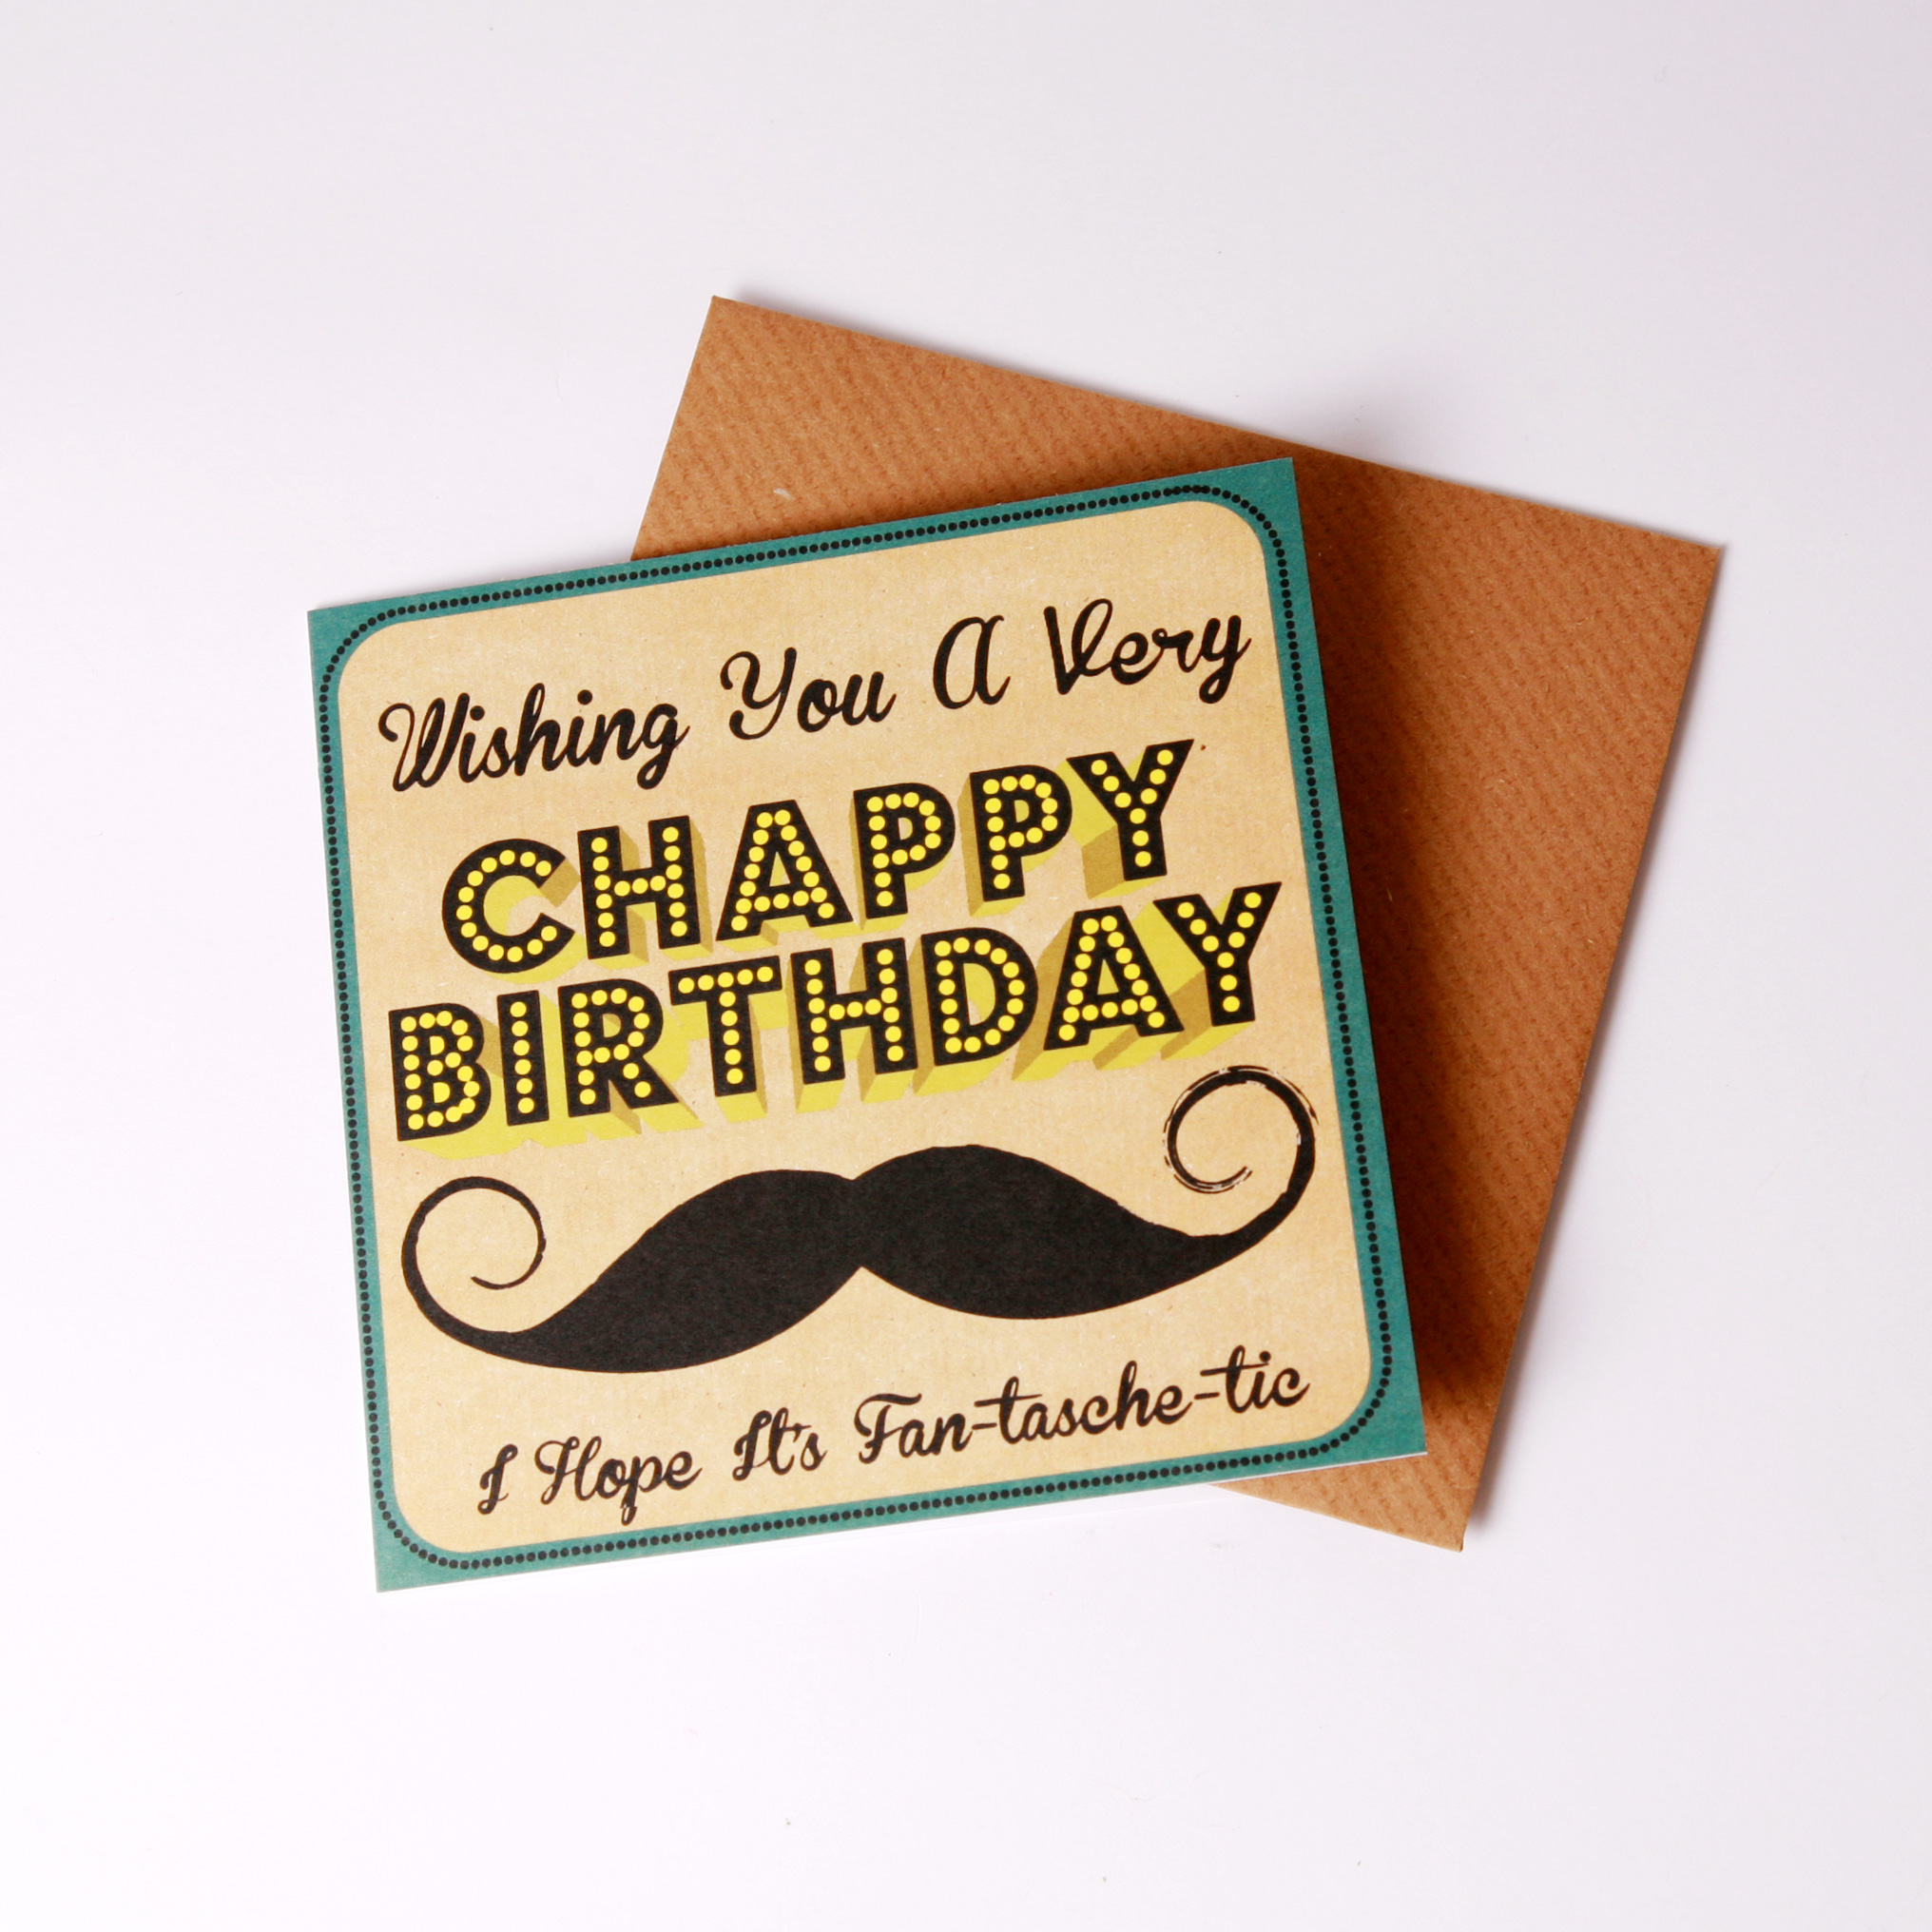 'Chappy' birthday card